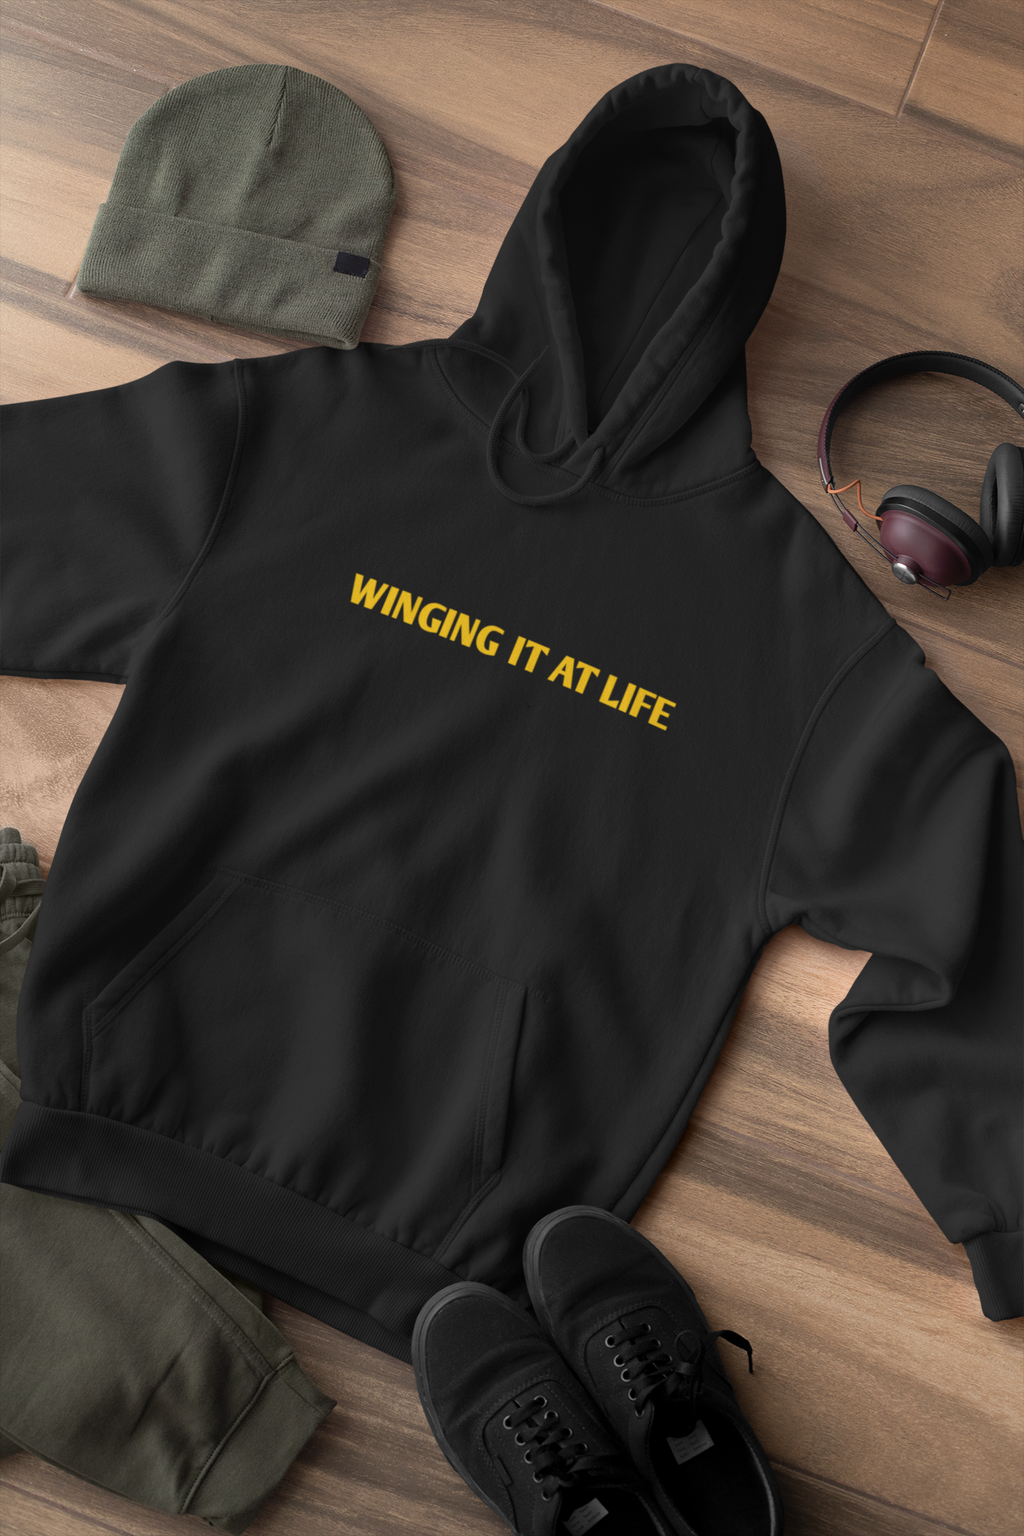 Winging it at life hoodie